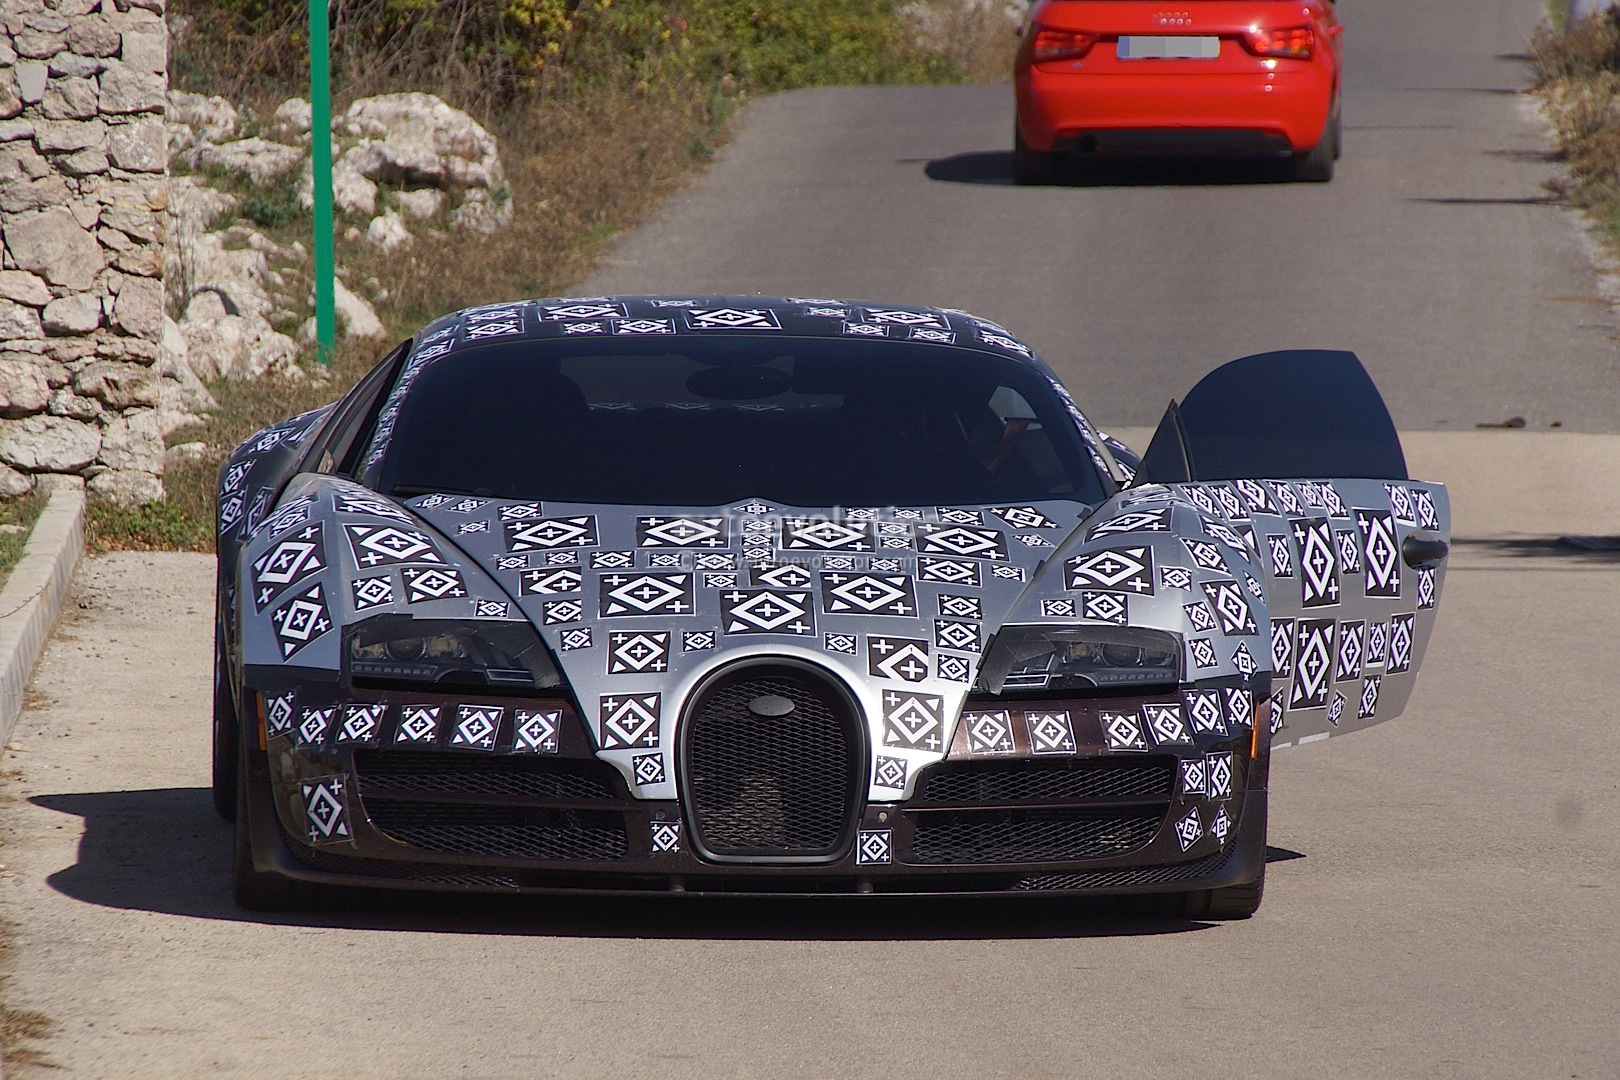 Official: Bugatti Veyron Successor, Chiron, to Have 1,500 Hybrid ...